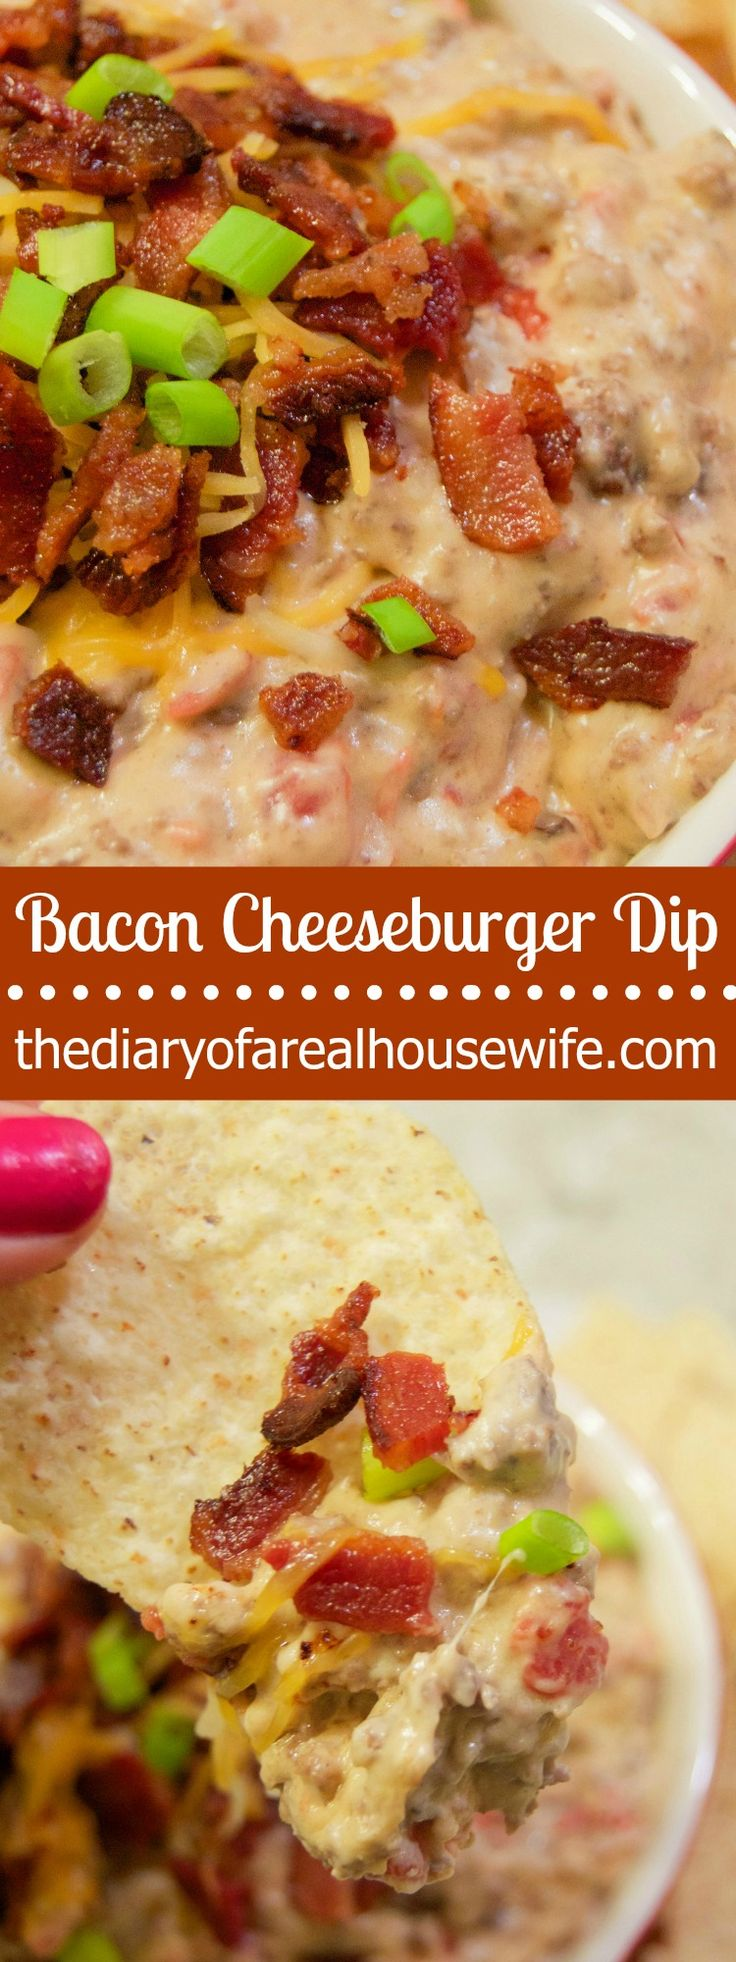 I made this last week for game day and I had to share it again! This Bacon Cheeseburger Dip is so good!